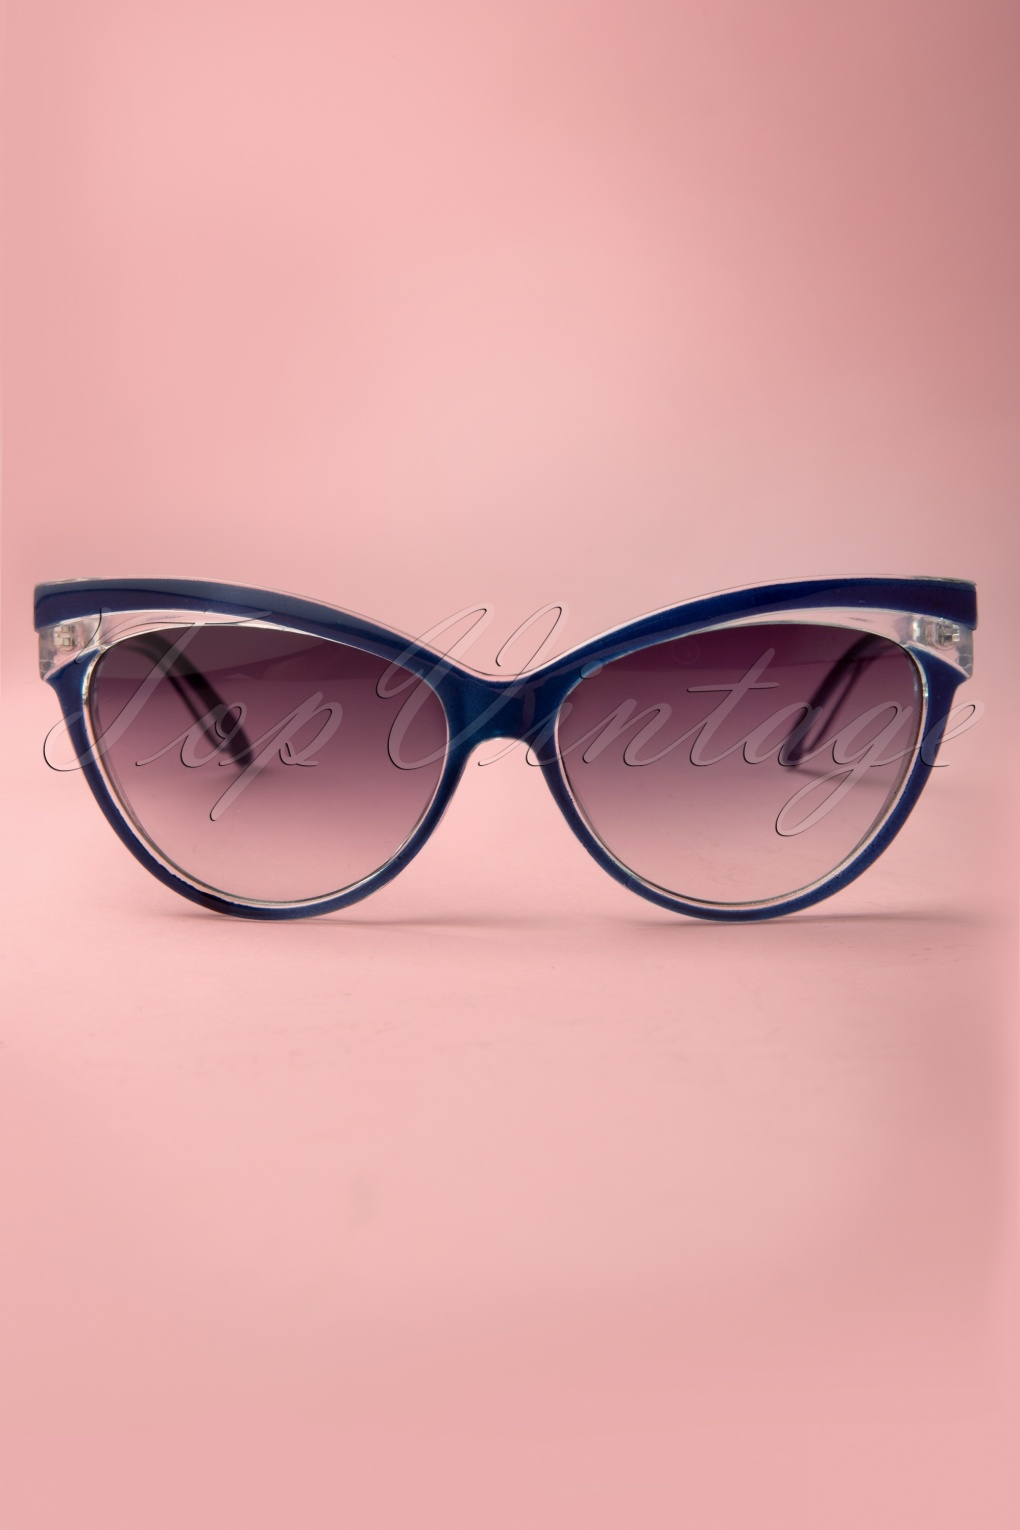 1950s Sunglasses & Eyeglasses Frames Judy Classic 50s Sunglasses in Navy £13.50 AT vintagedancer.com